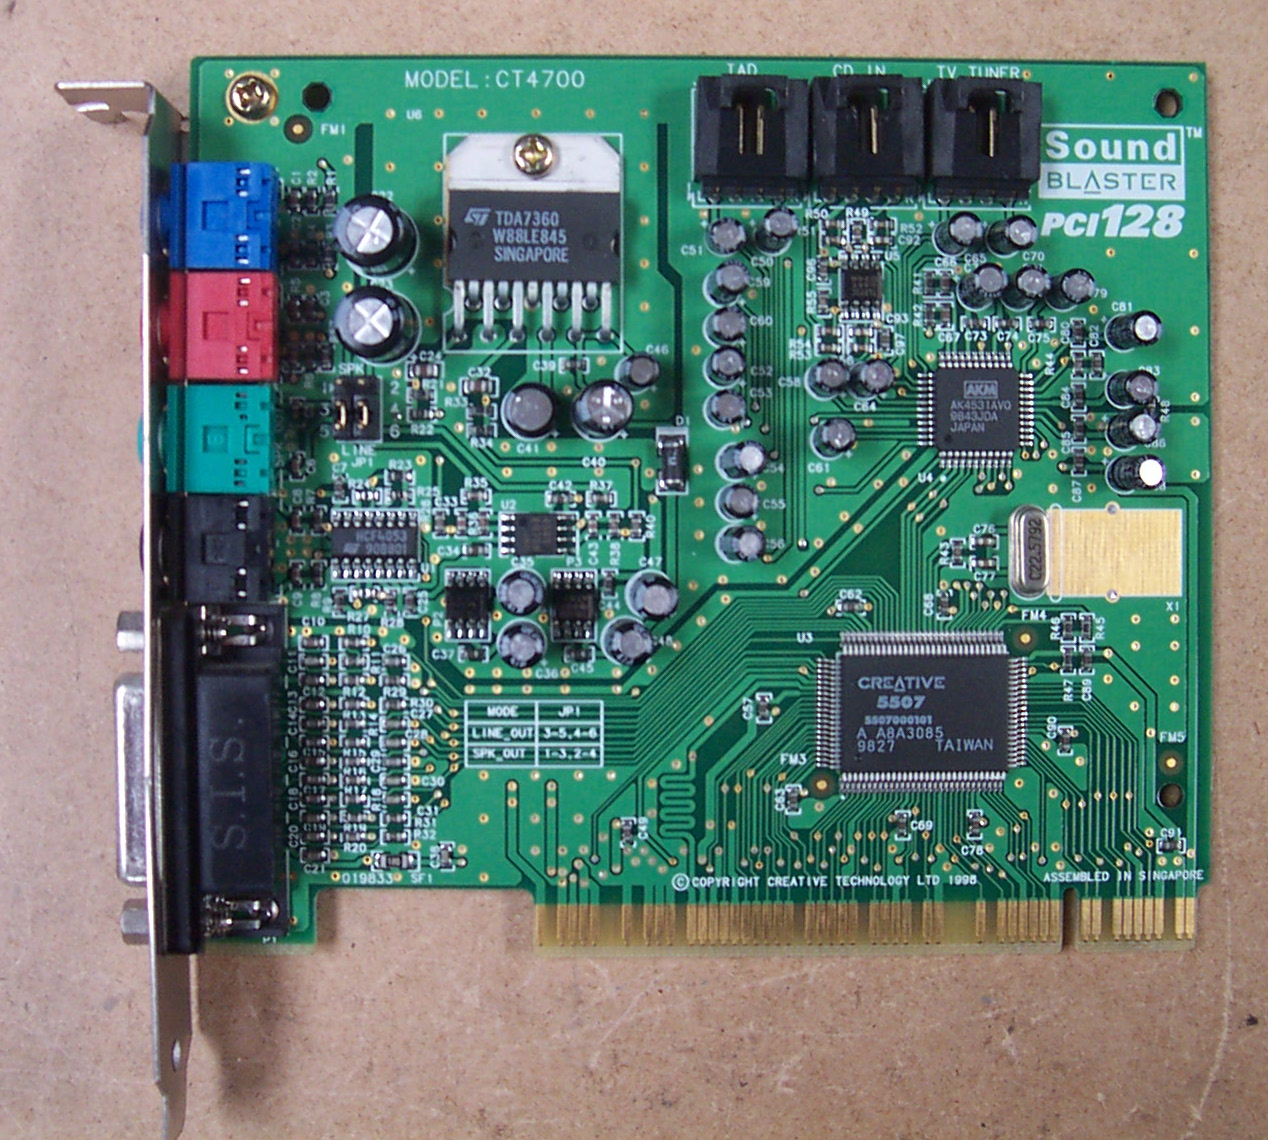 SOUND BLASTER PCI 128 CT4700 DRIVERS FOR MAC DOWNLOAD